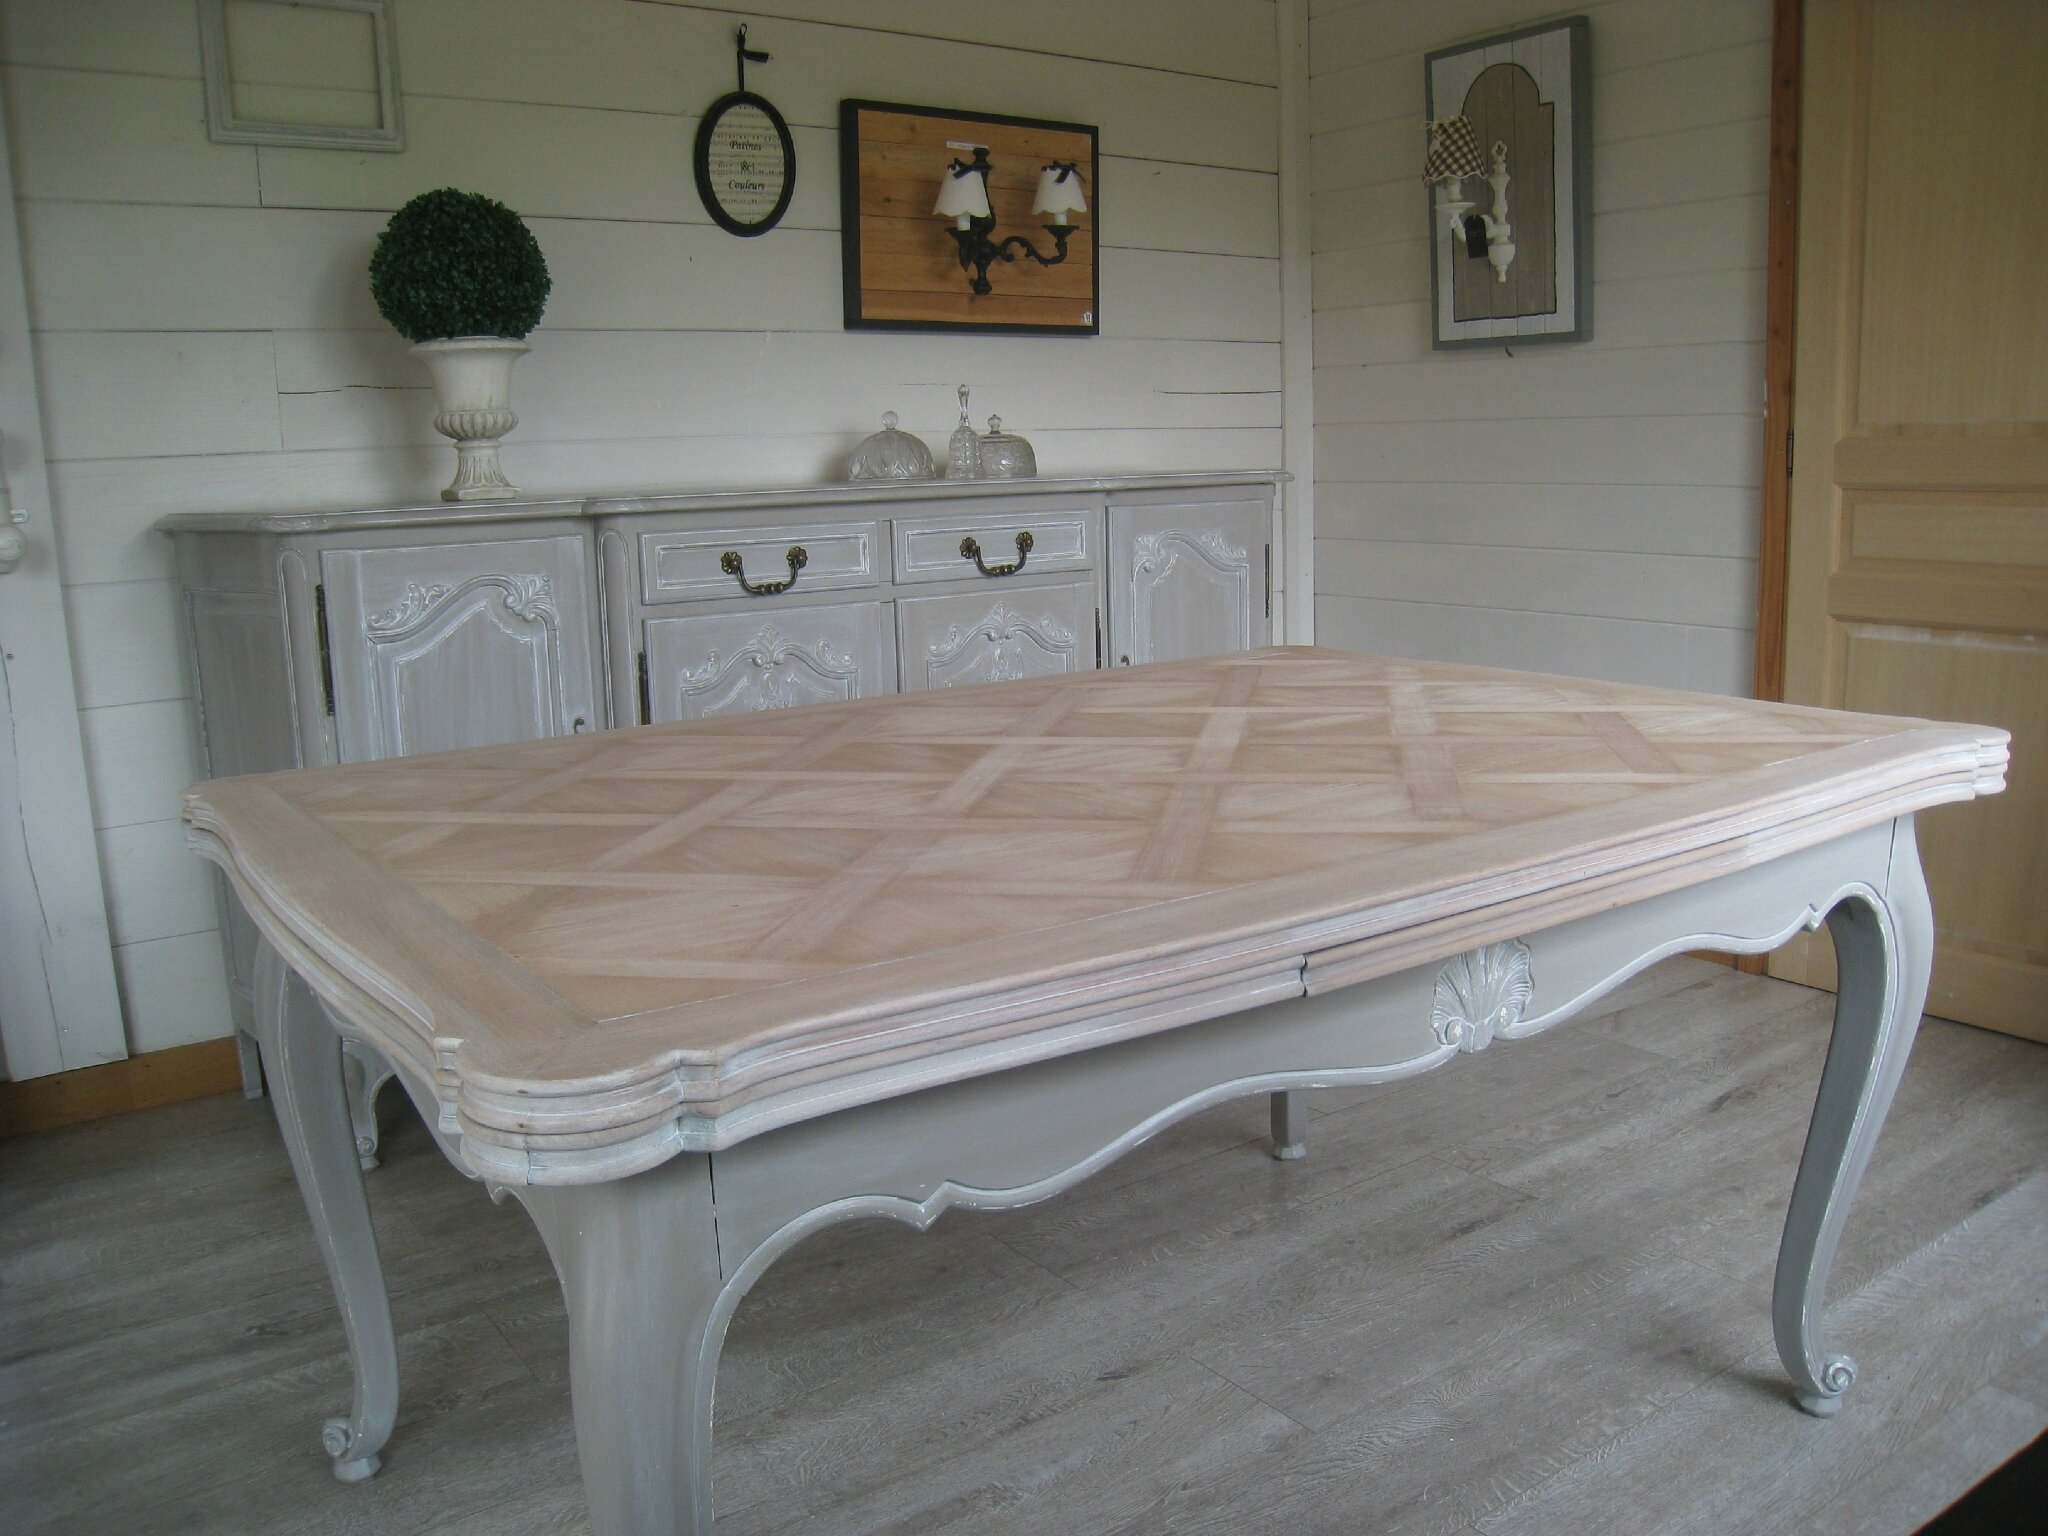 Bahut r gence relook et sa table assortie 2 patines couleurs - Modele de meuble repeint ...